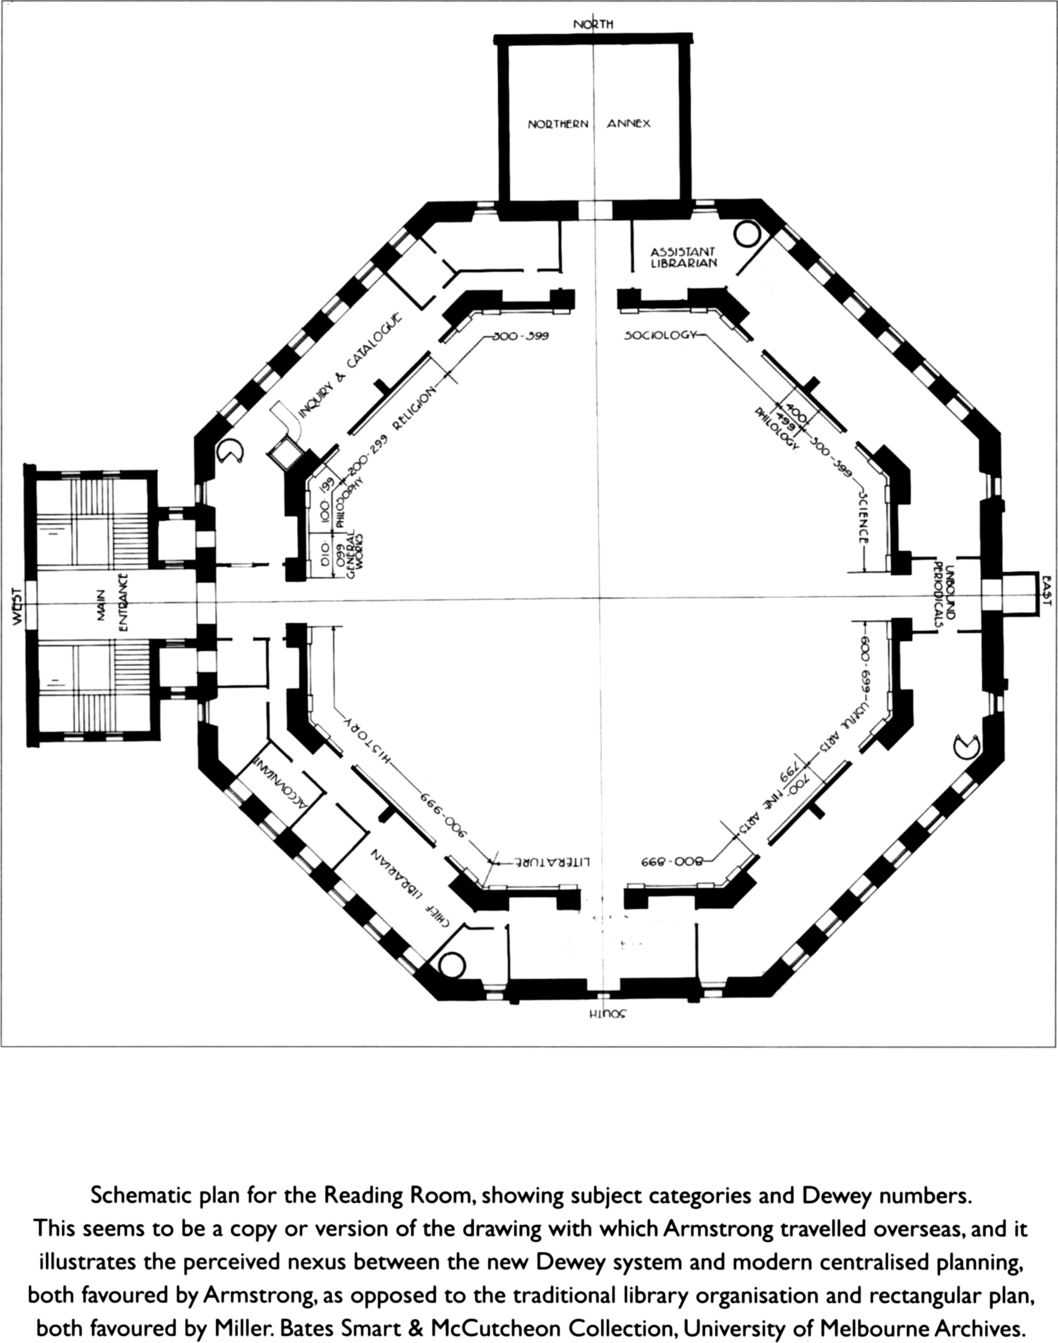 Schematic Plan For The Reading Room Showing Subject Categories And Spring Dewey Numbers This Seems To Be A Copy Or Version Of Drawing With Which Armstrong